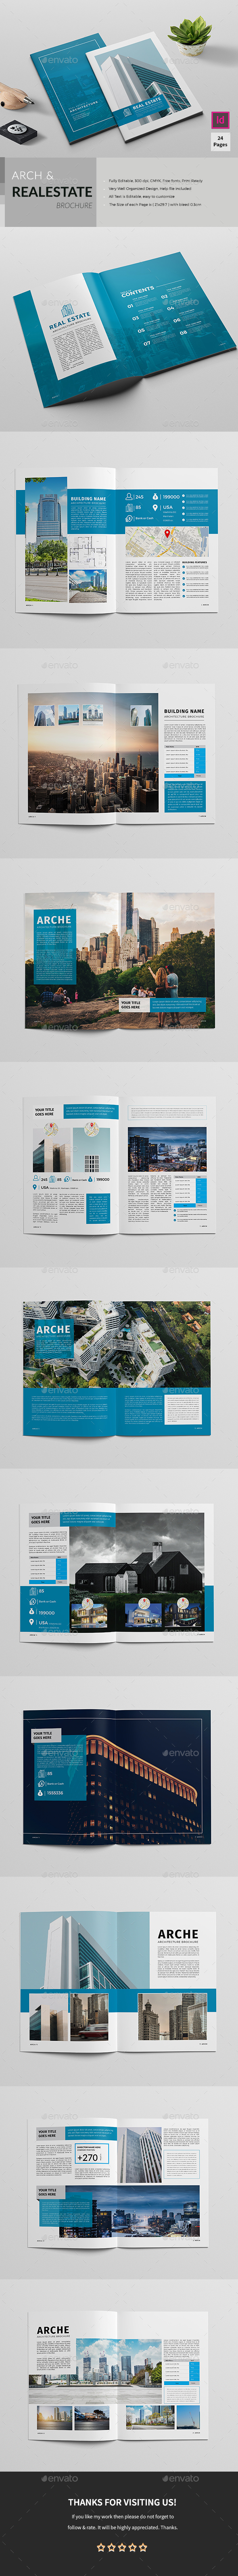 Real Estate/Architecture Brochure - Corporate Brochures